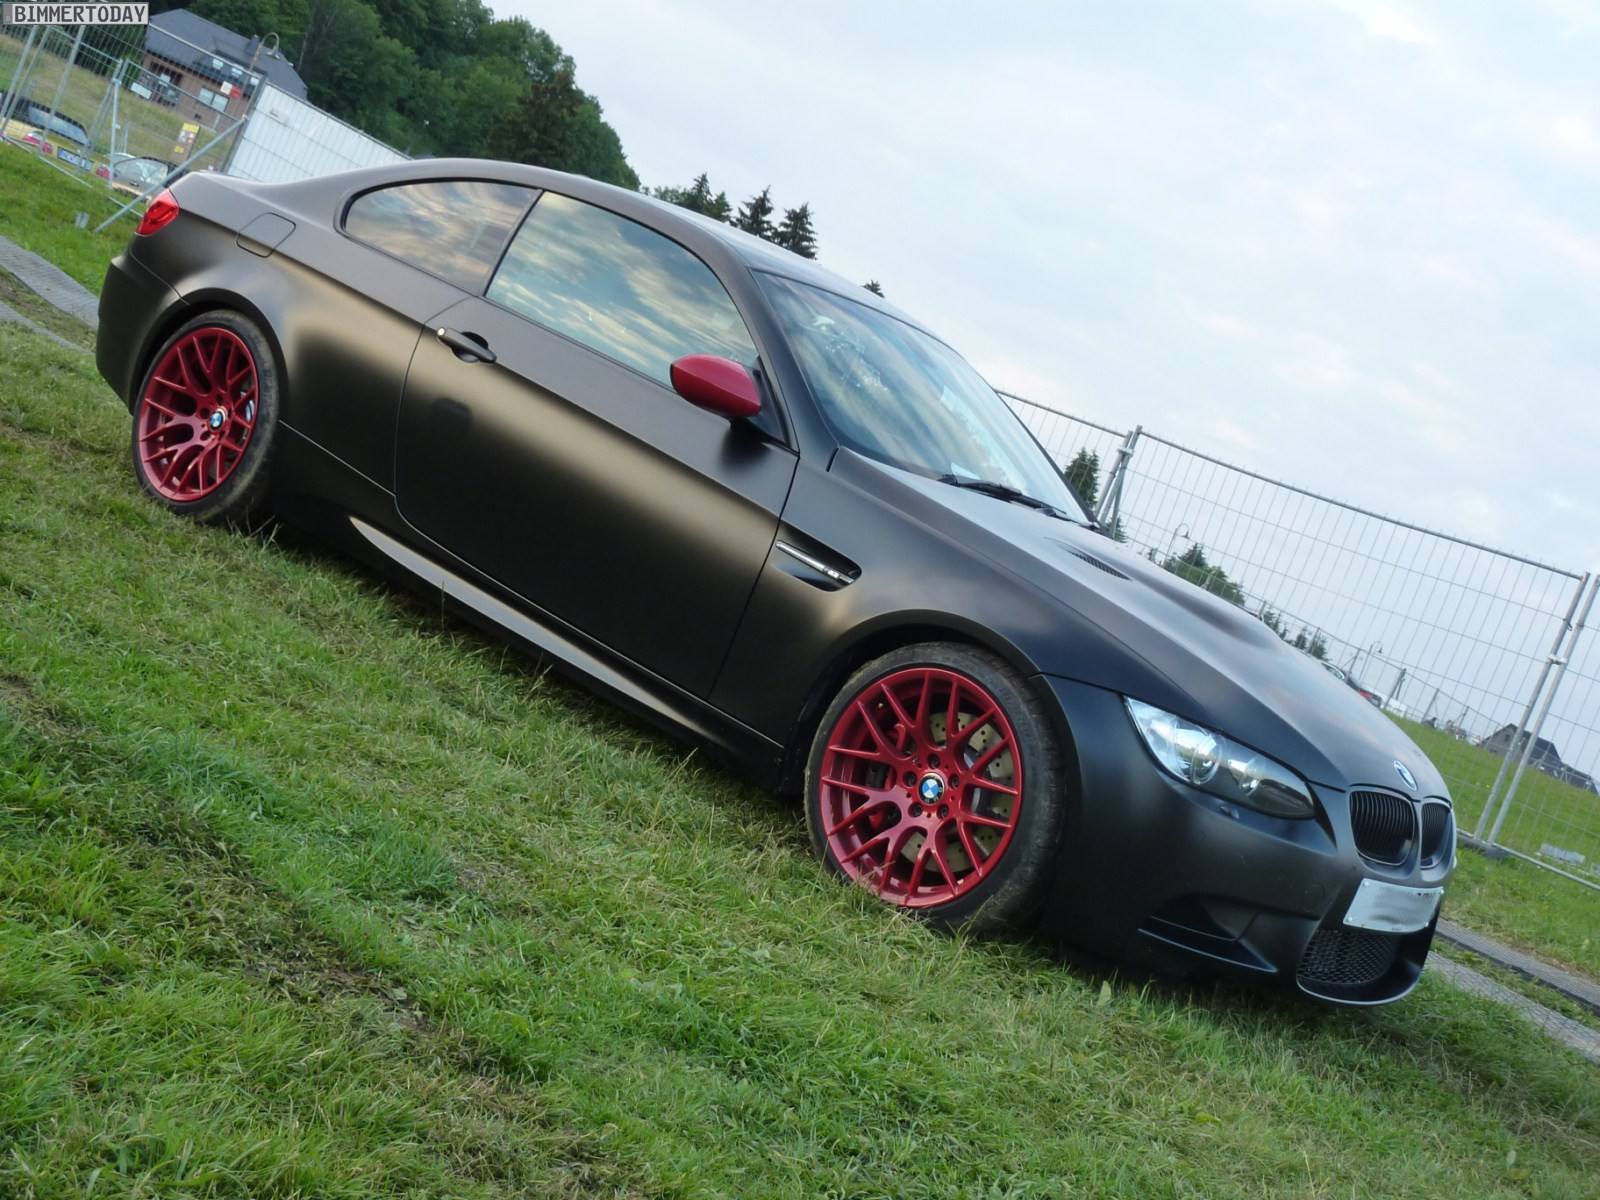 bmw m festival 2011 m3 in frozen black mit roten akzenten. Black Bedroom Furniture Sets. Home Design Ideas